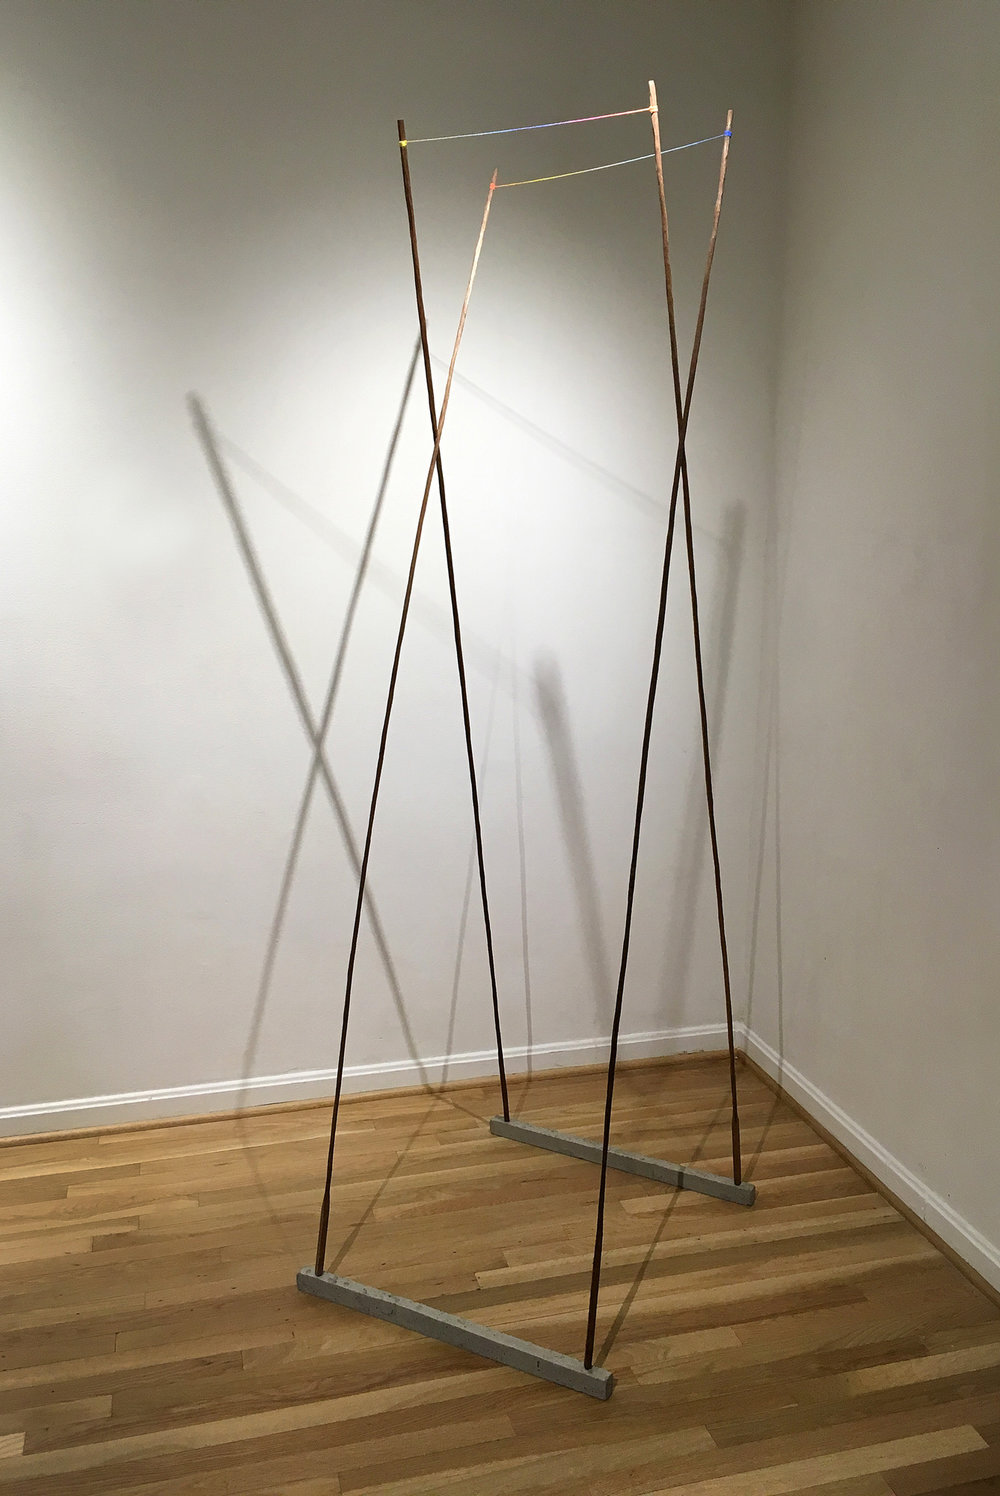 Untitled (Identity),  2017, wood, concrete, string, chalk, 26 x 28 x 85 in. Pictured at Hillyer Art Space, Washington, DC